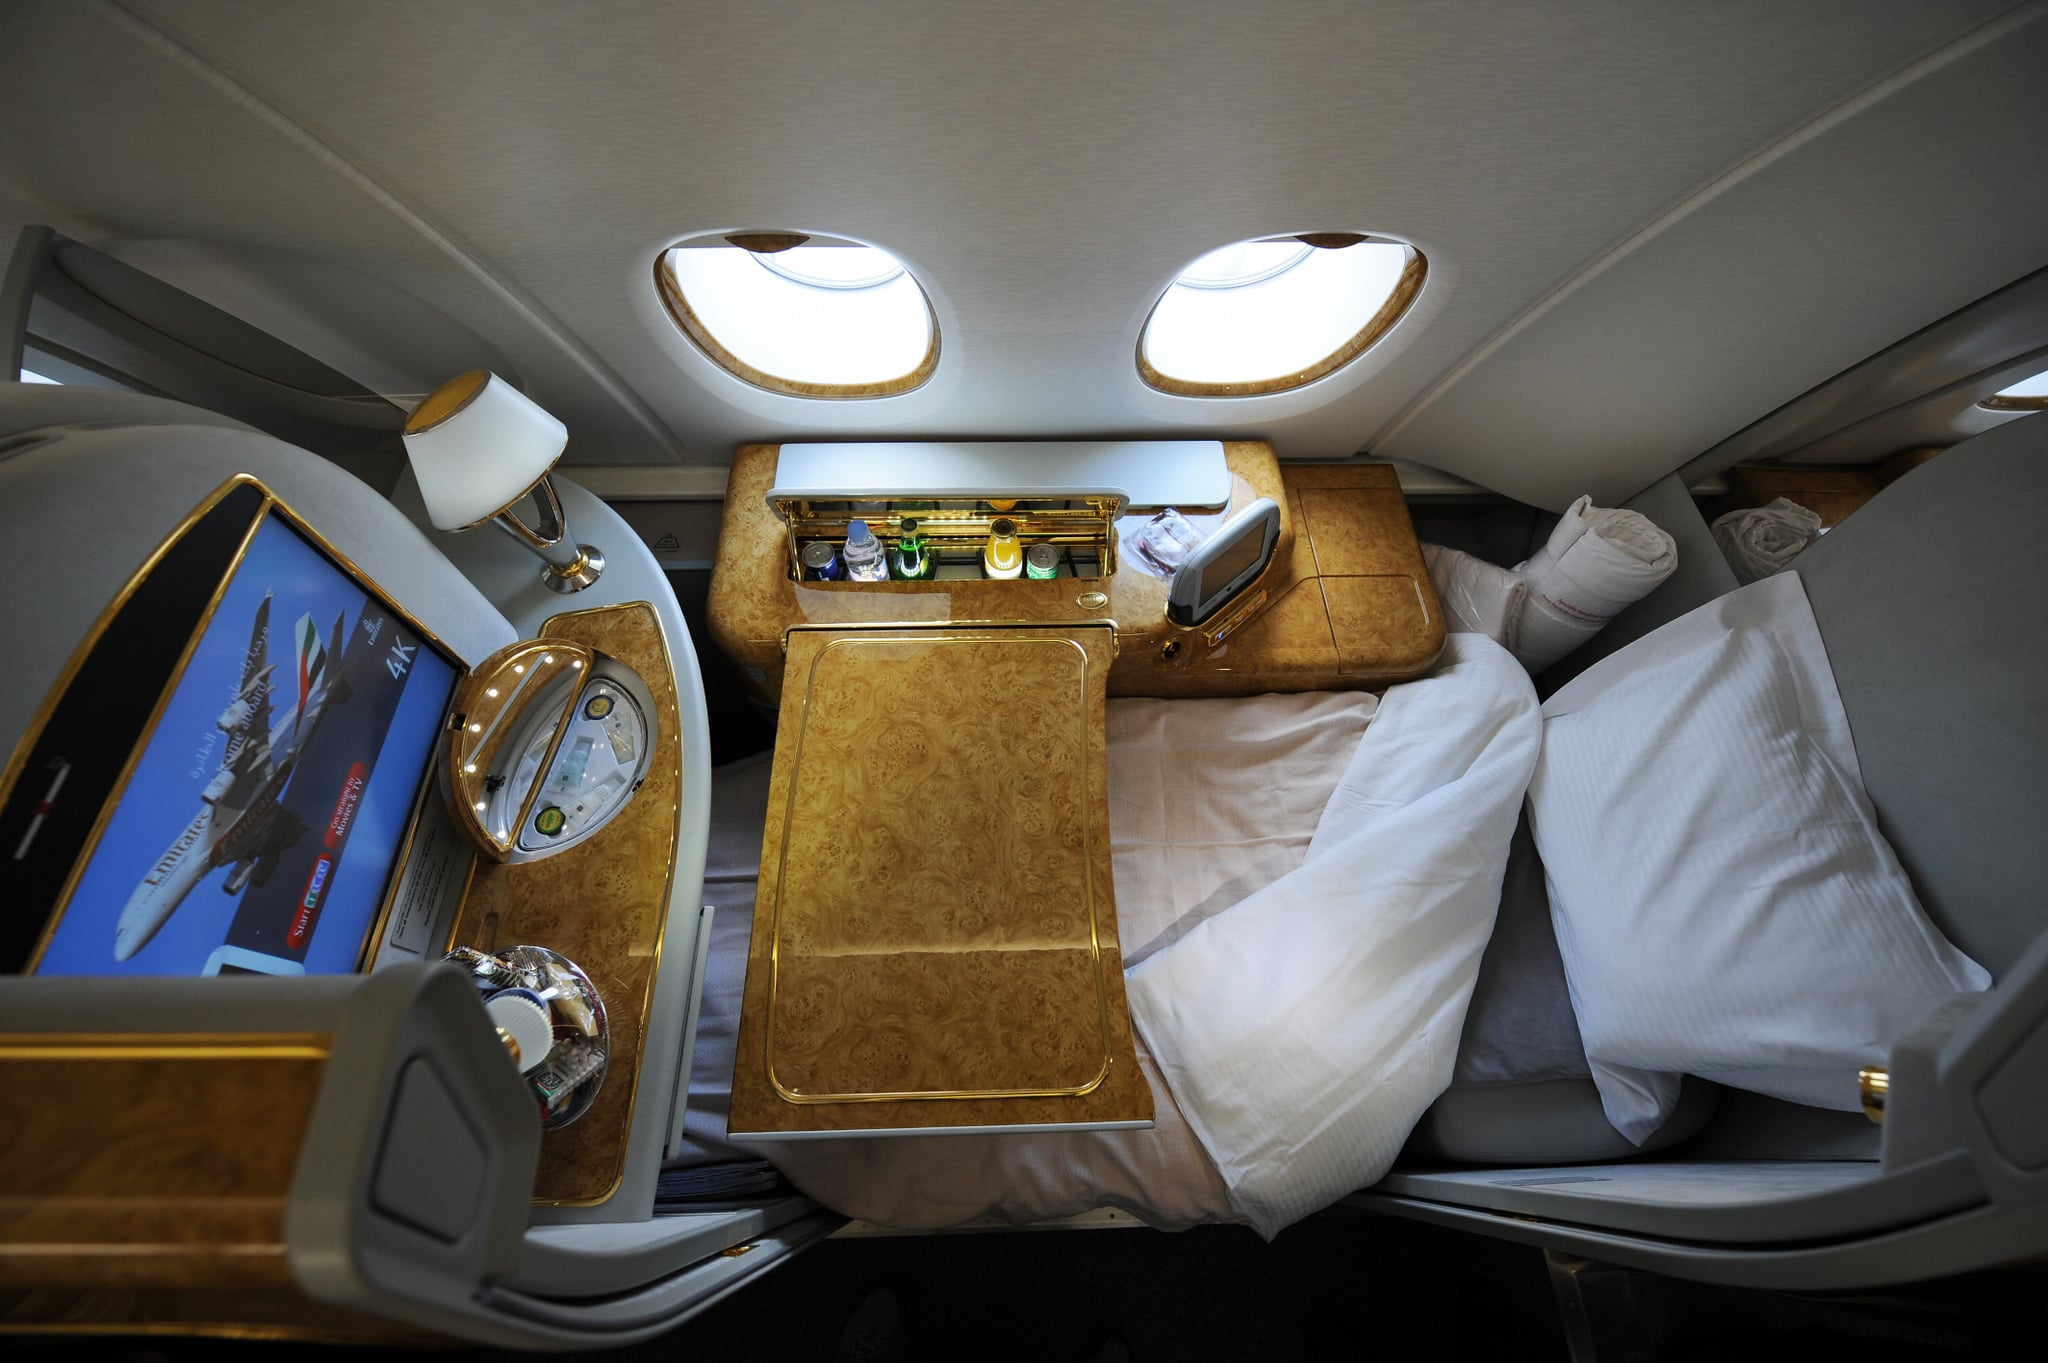 Emirates Airlines Airbus A380 Popsugar Career And Finance